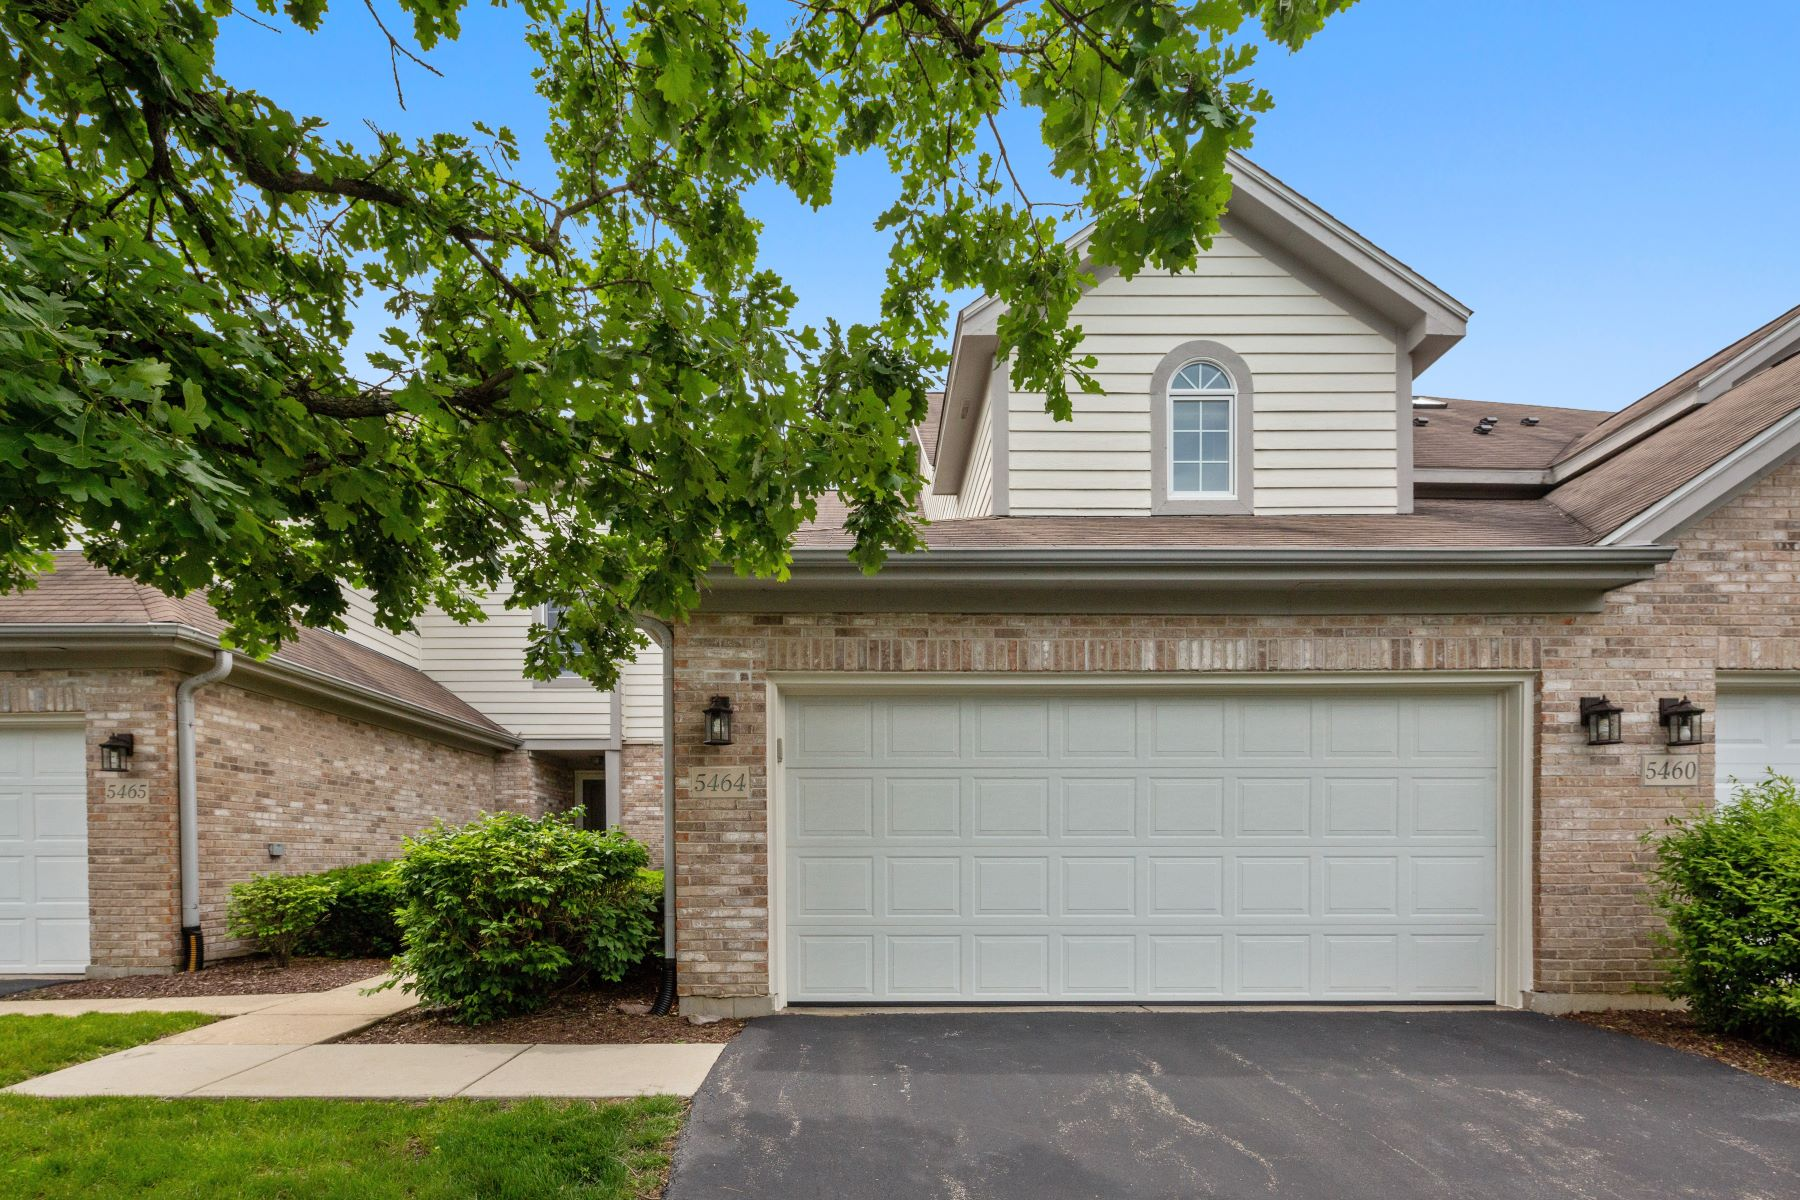 Townhouse for Sale at Fantastic Downers Grove Townhome! 5464 Ashbrook Place Unit 20 Downers Grove, Illinois 60515 United States